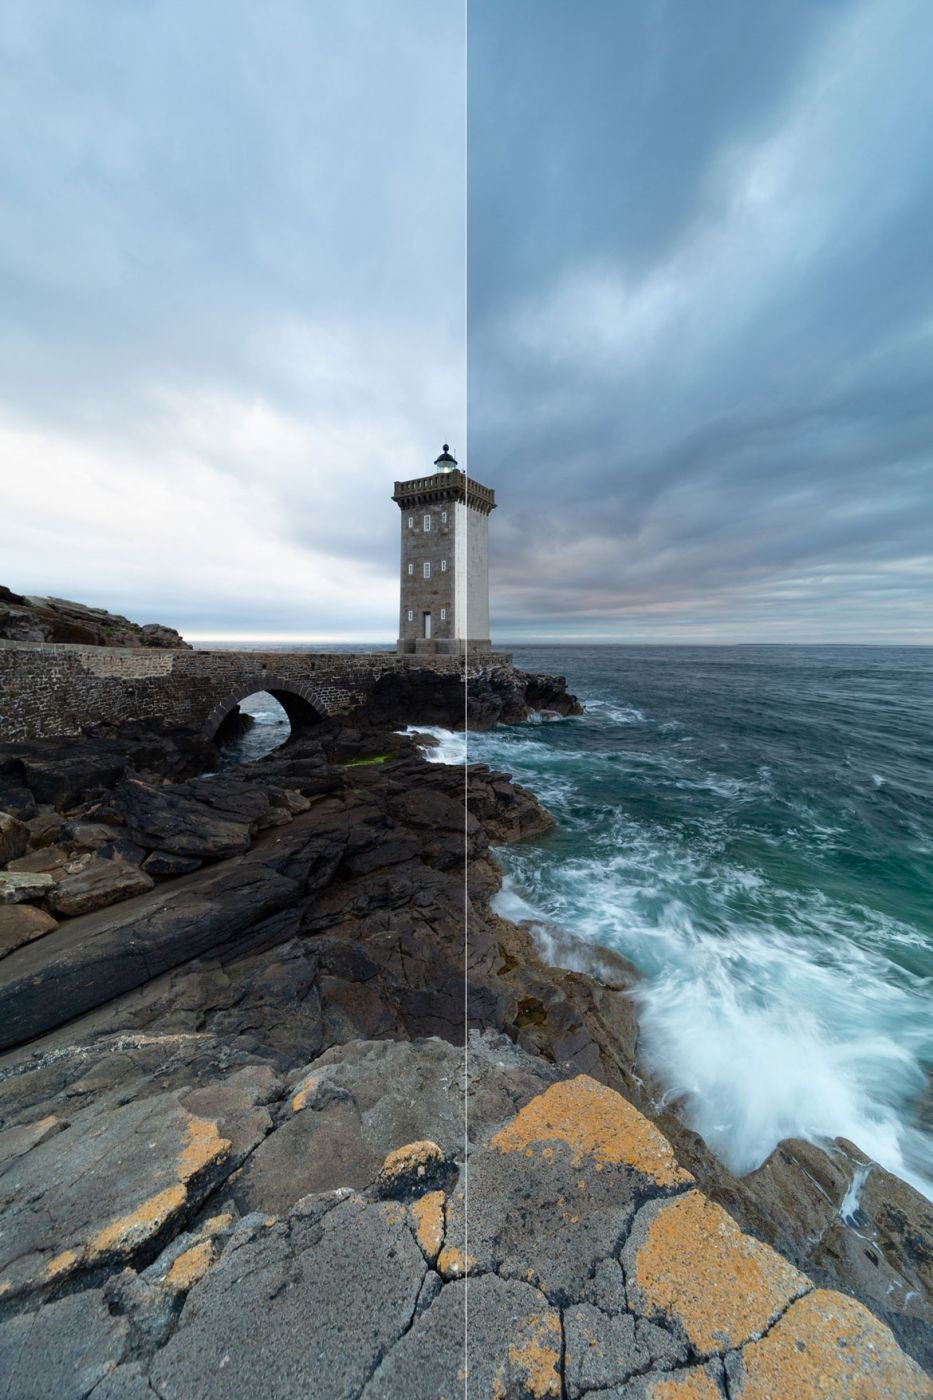 How to get started with Filters in Landscape Photography